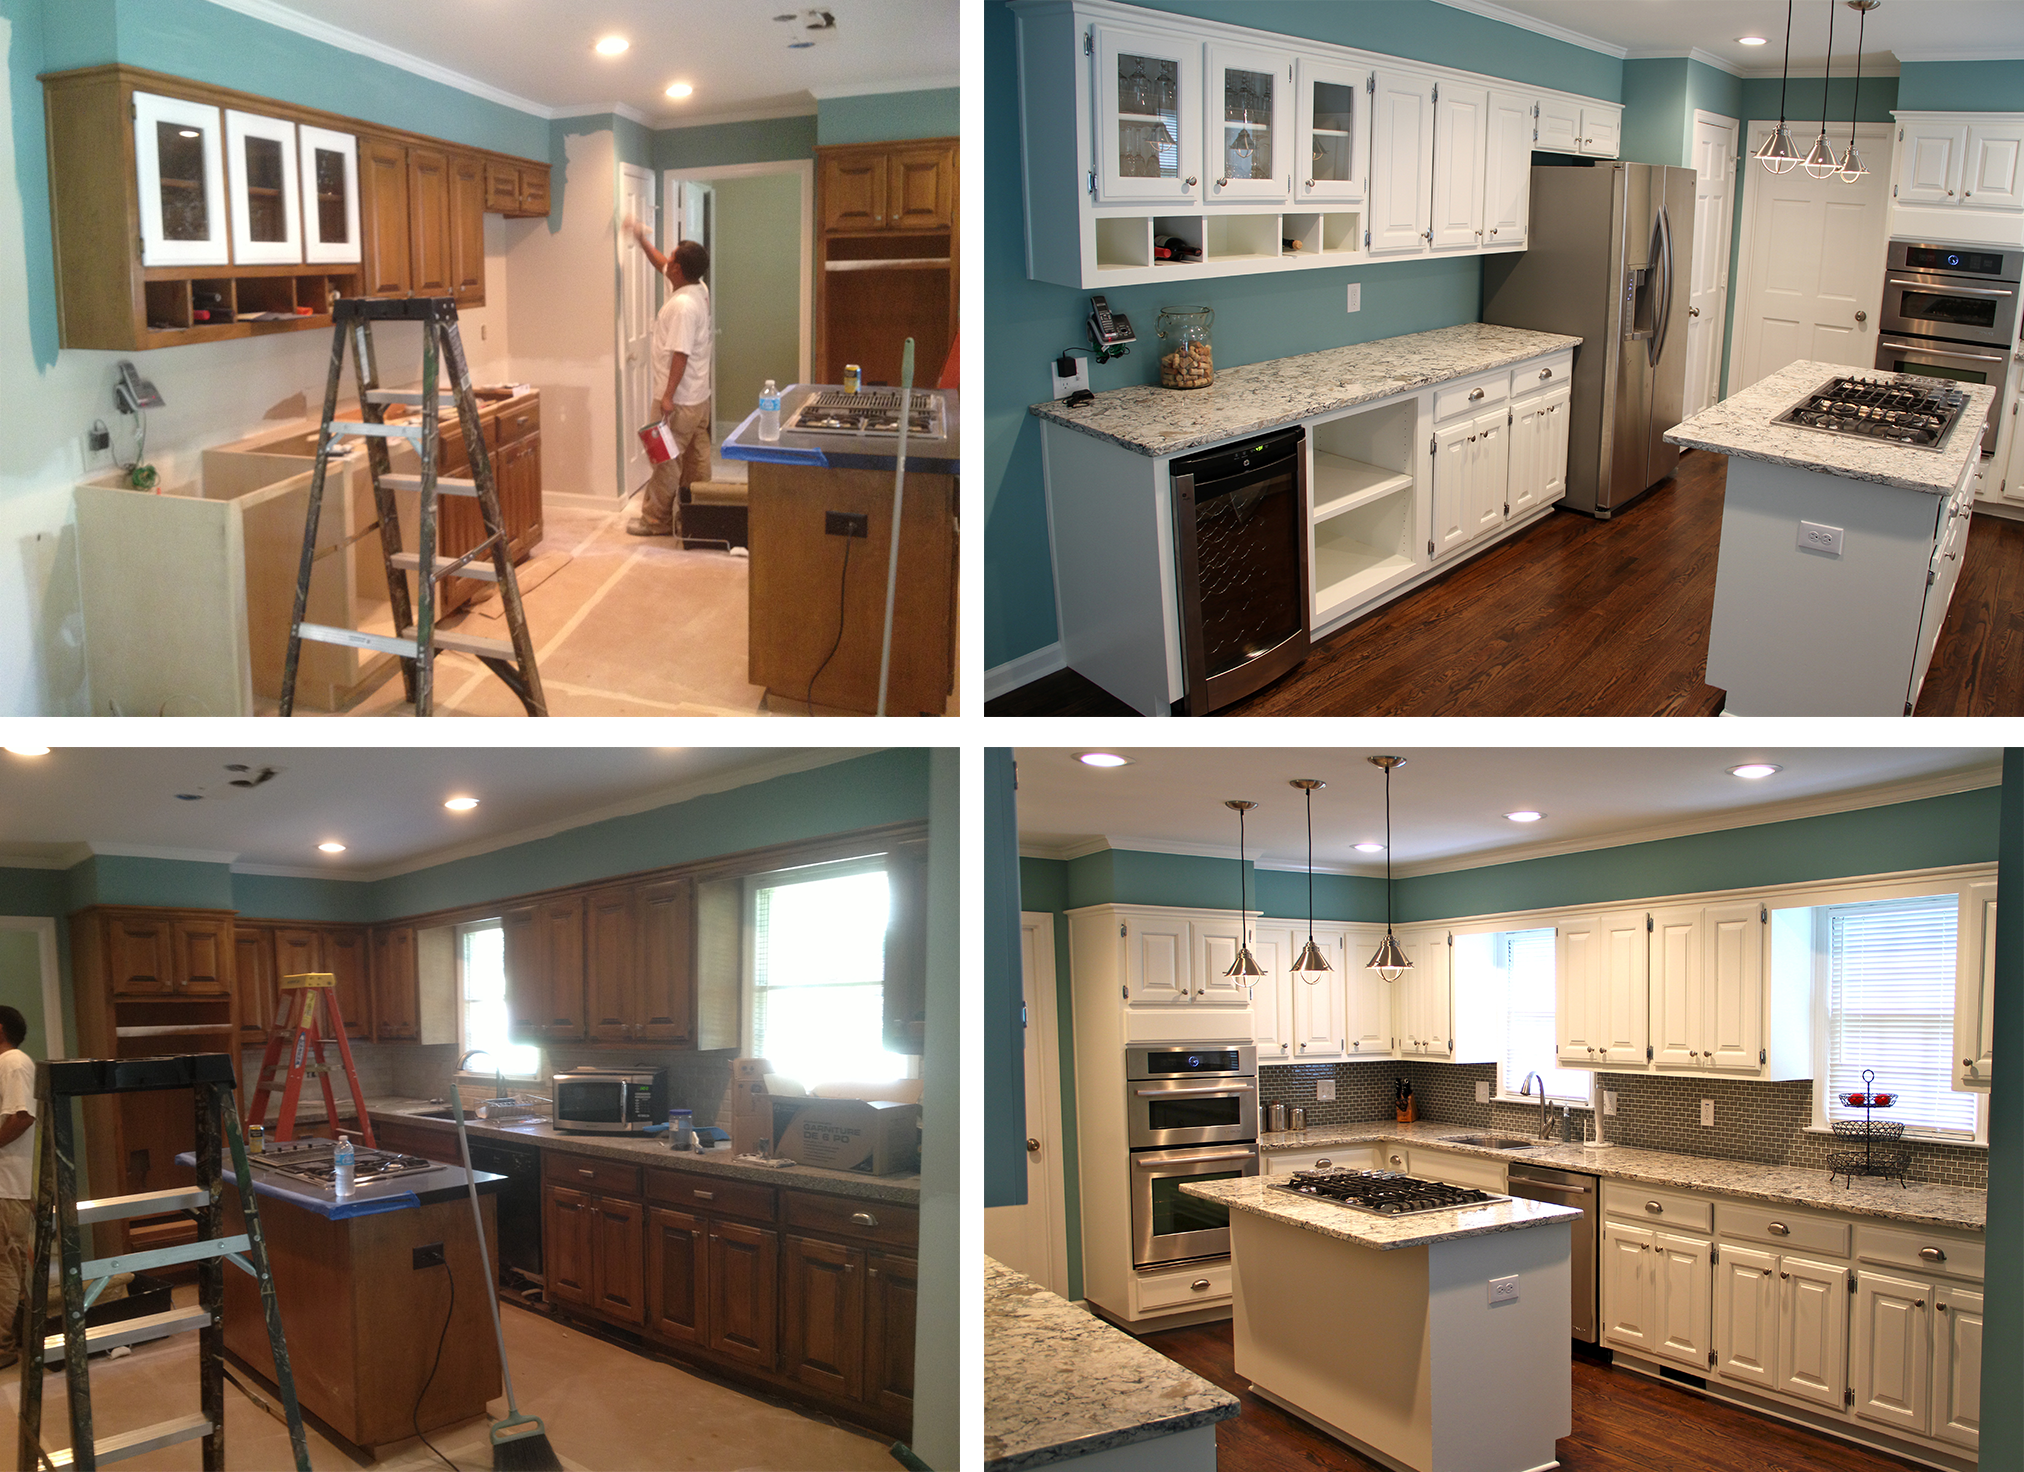 Teal walls and white cabinetry